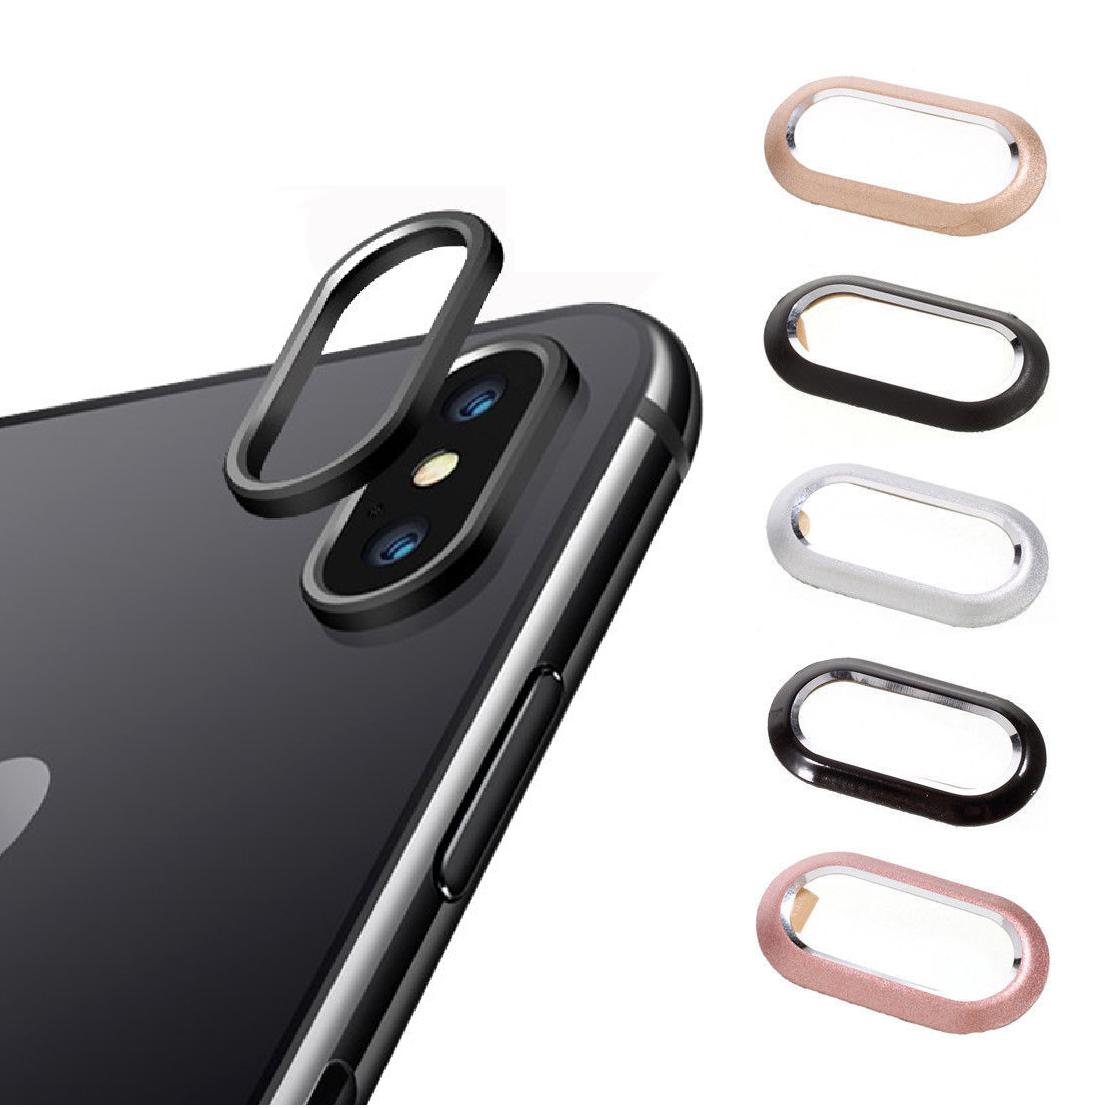 For iPhone X / XS / XR / XS Max Rear Camera Lens Protector R